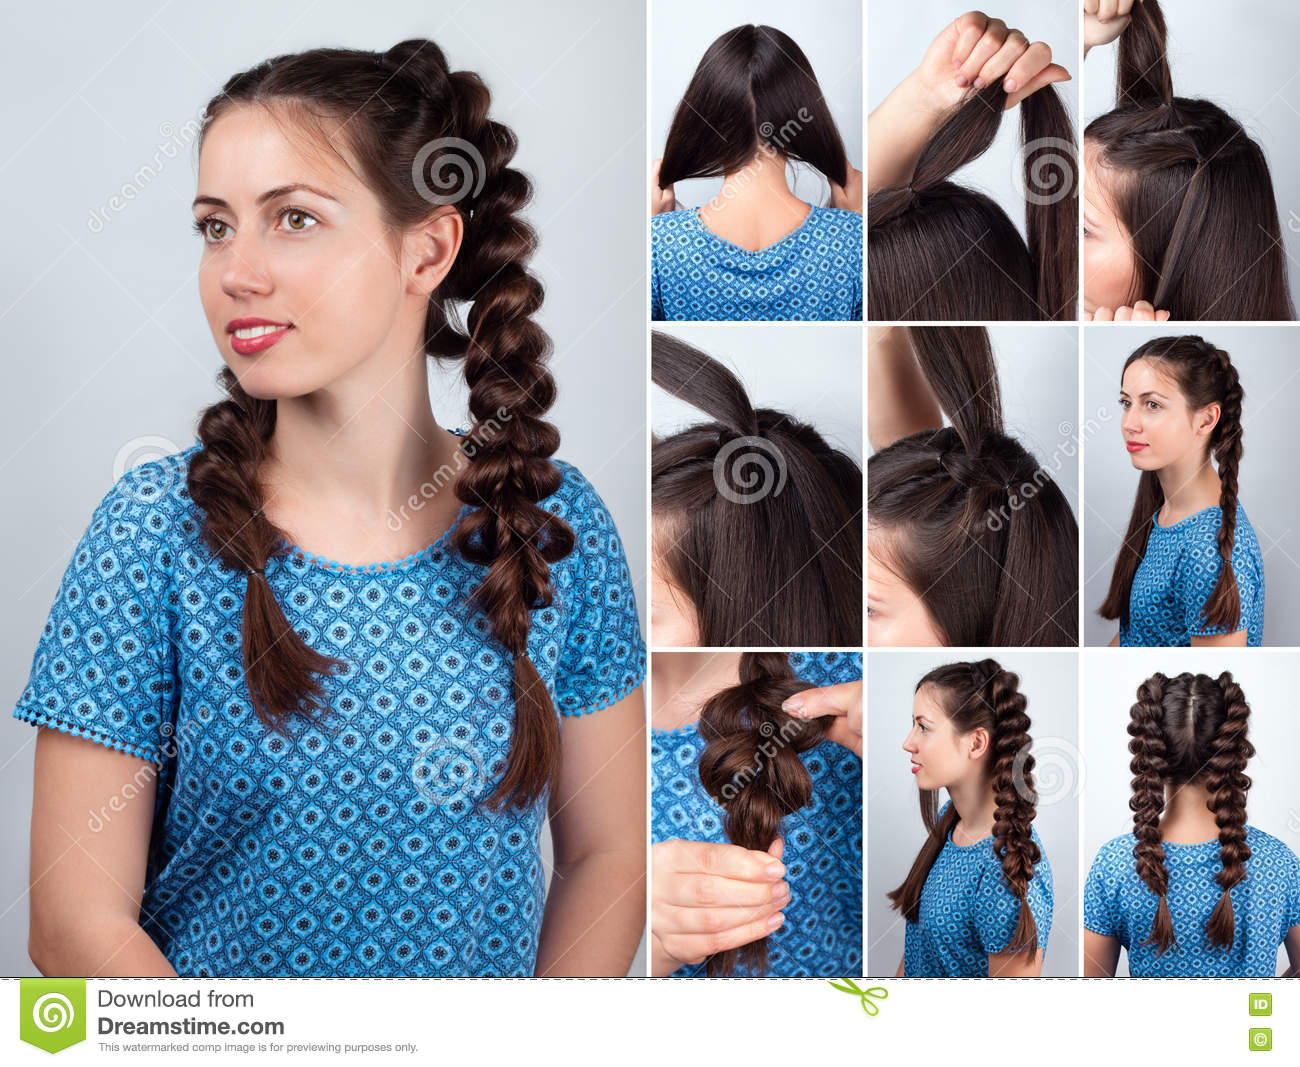 Remarkable Hair Tutorial Hairstyle For Long Hair With Twist Accessory Tuto Short Hairstyles For Black Women Fulllsitofus